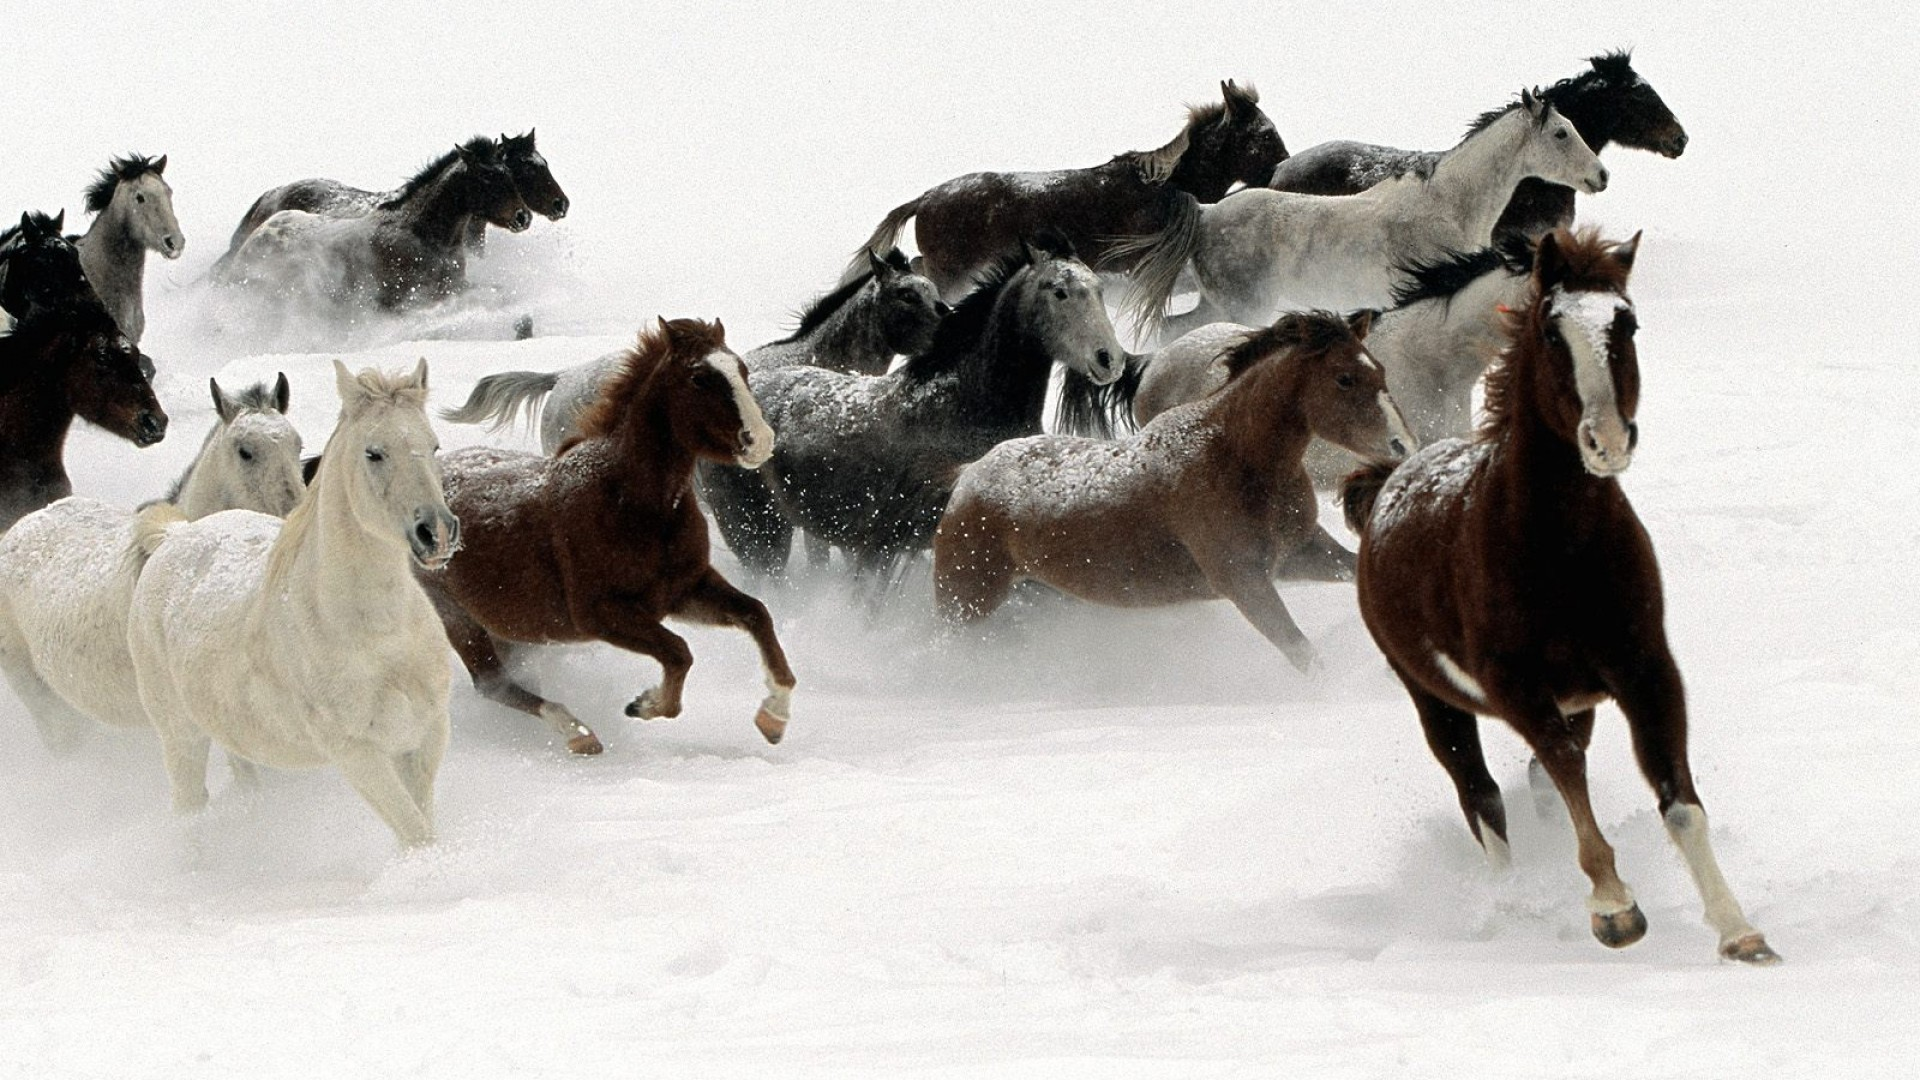 Christmas Horses Wallpaper For Computer 71 Images